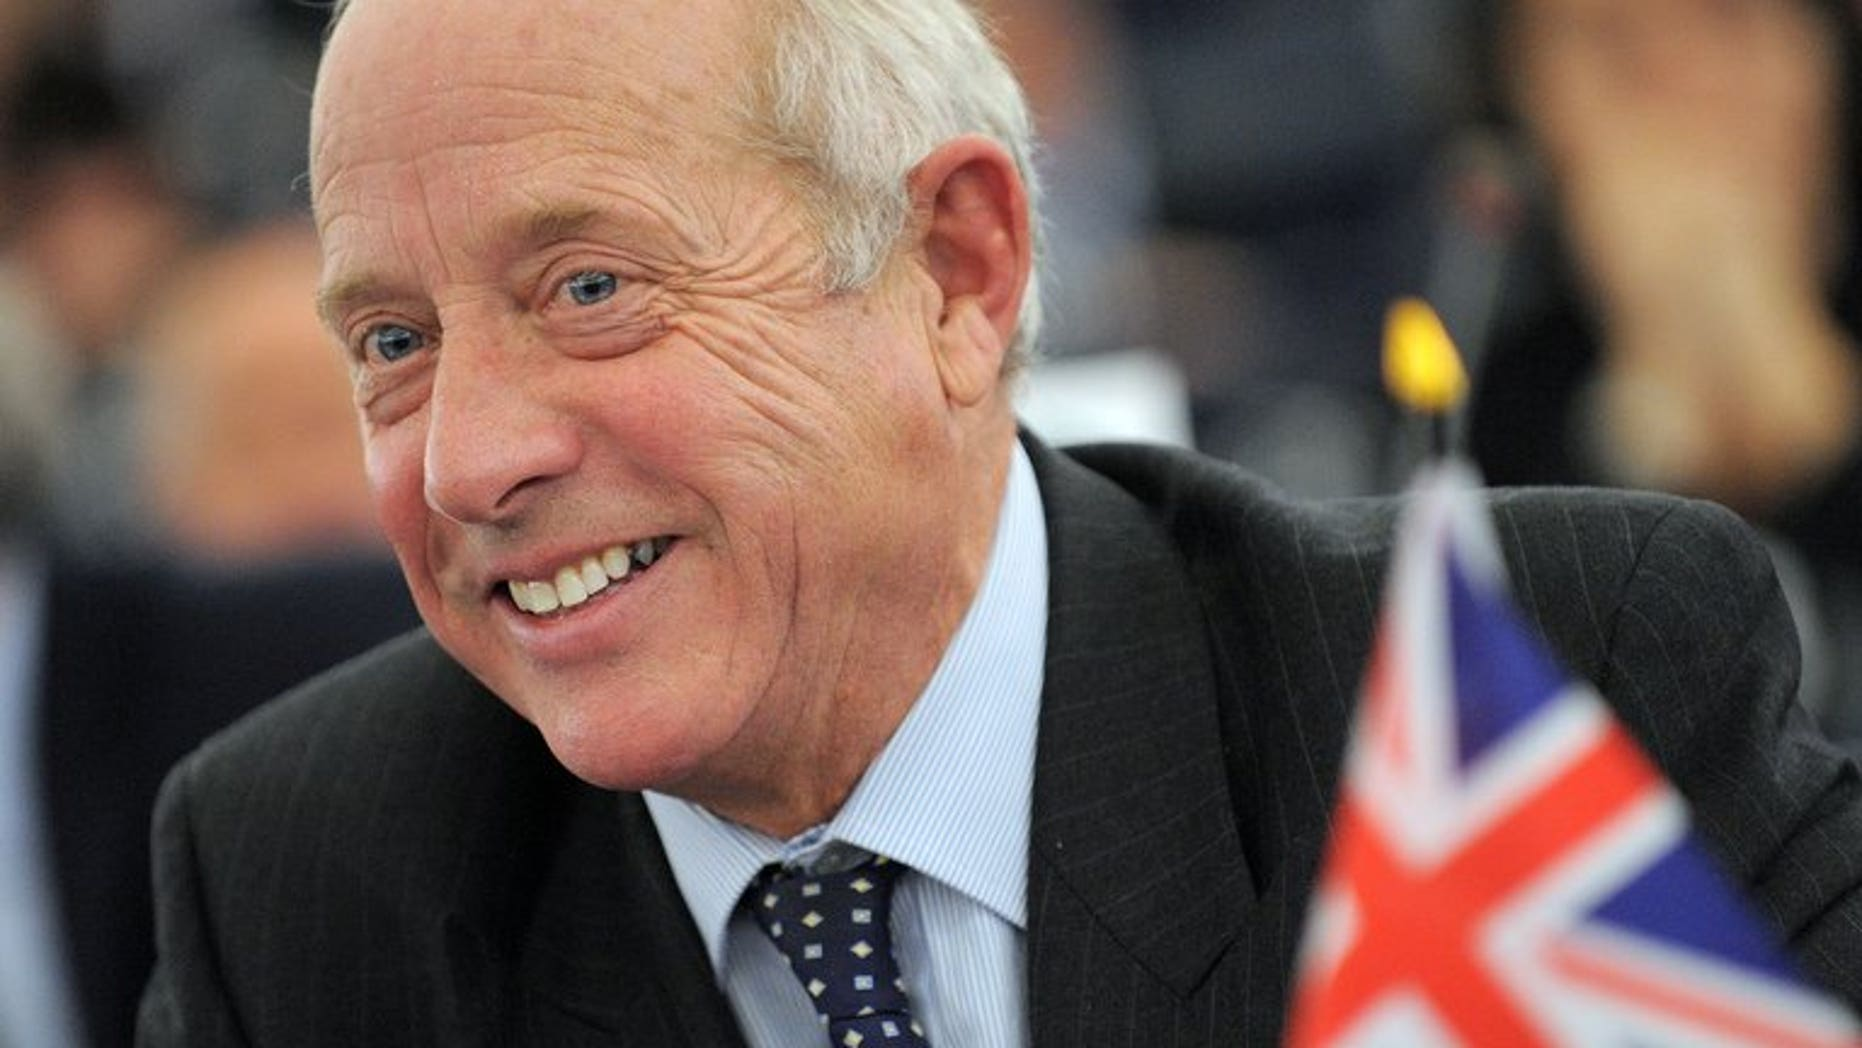 Britain's United Kingdom Independence Party (UKIP) and member of the European Parliament Godfrey Bloom is pictured at the European Parliament in Strasbourg, eastern France, on November 24, 2010.